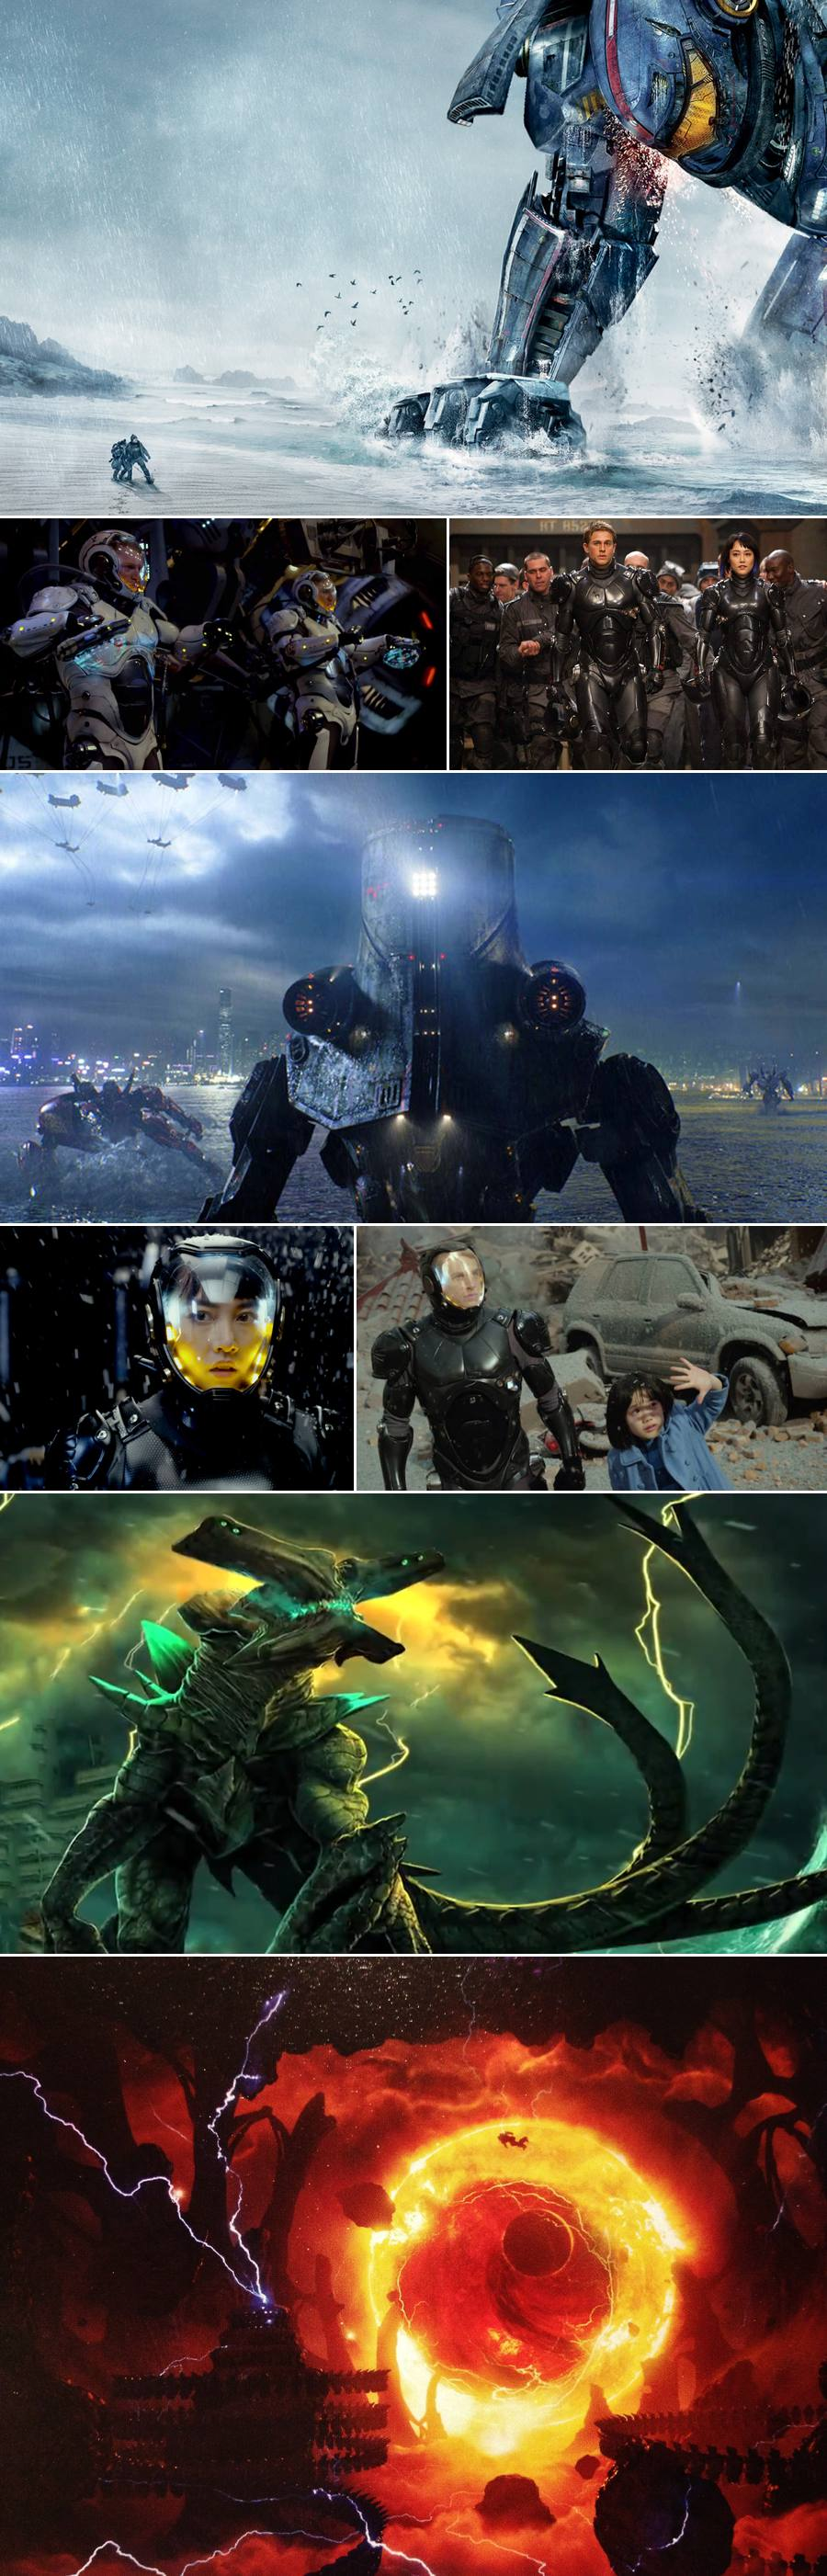 Pacific Rim Movie Stills